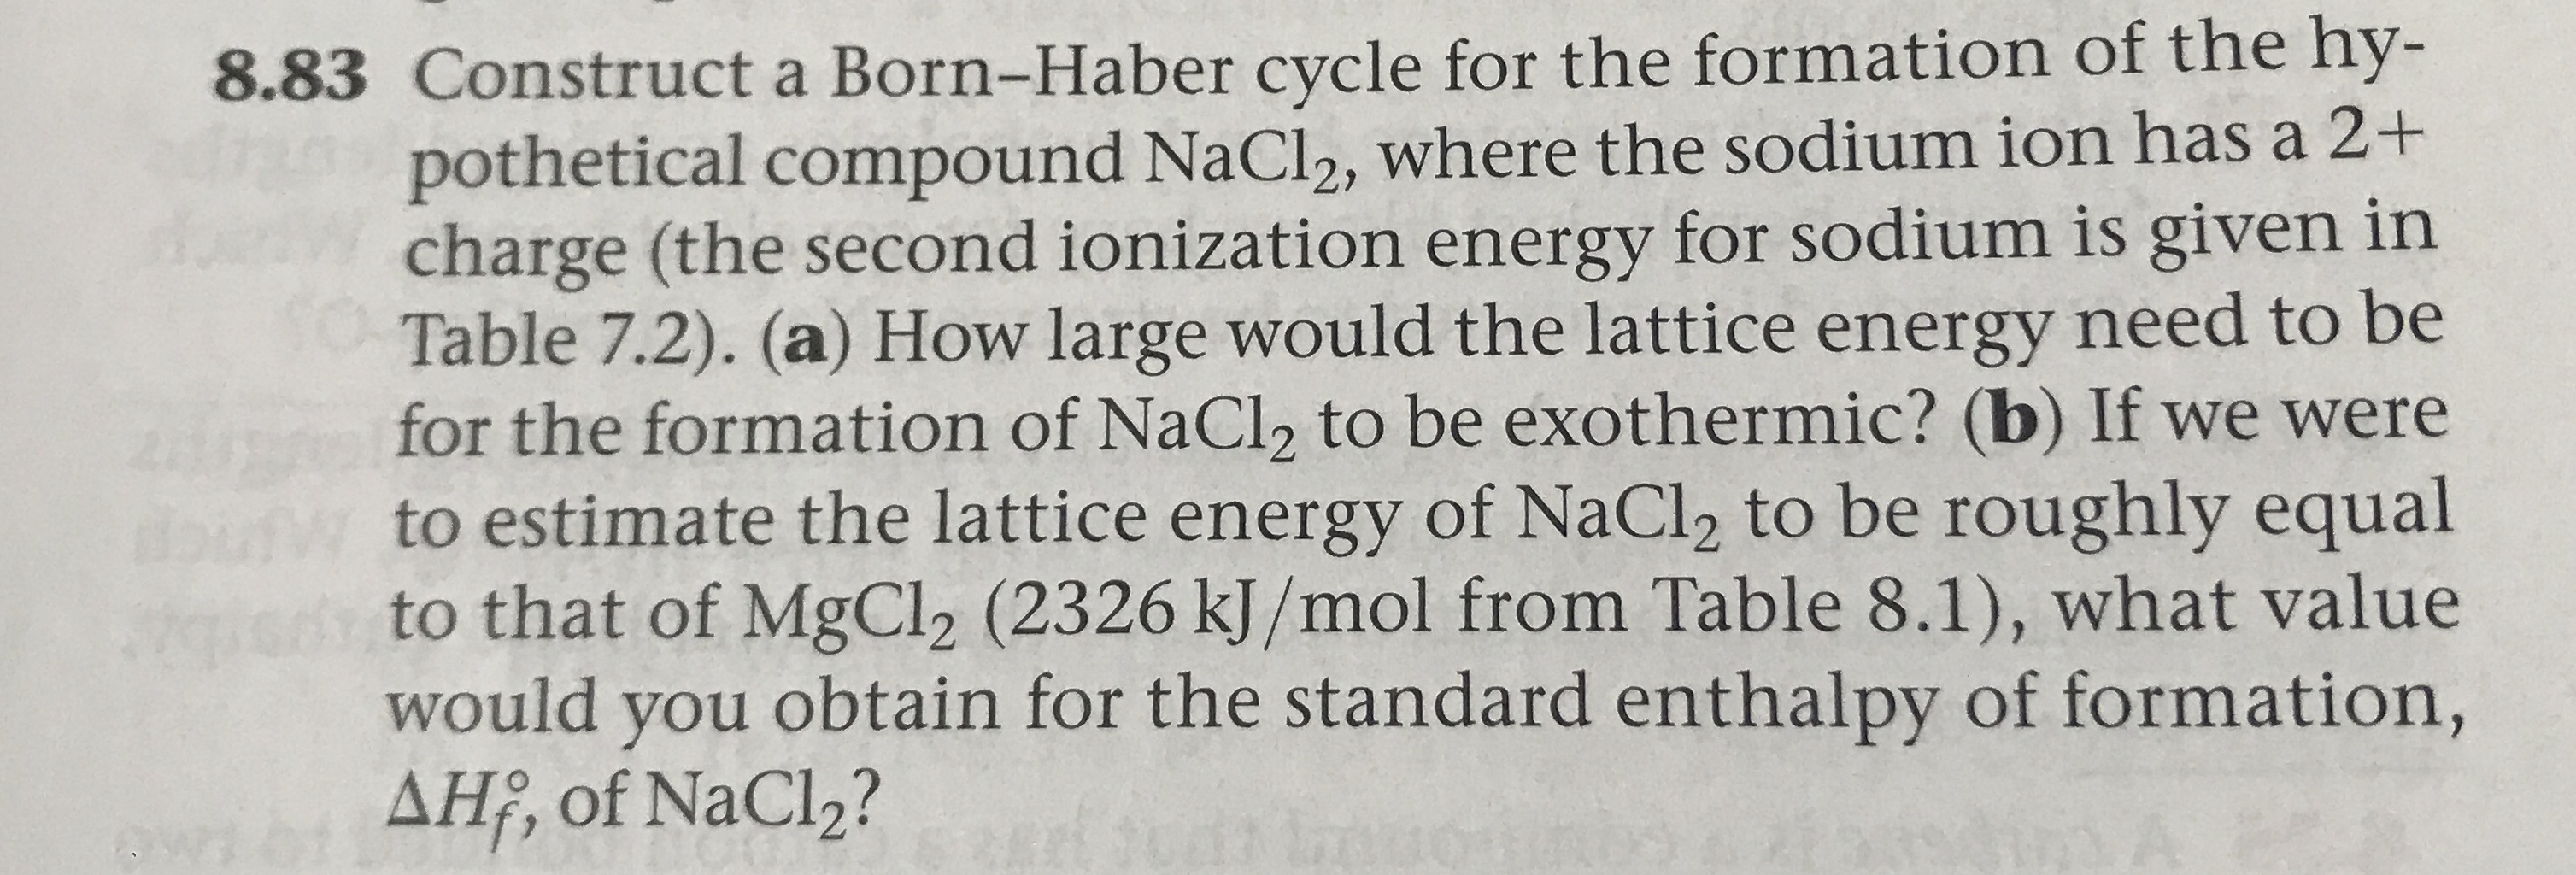 8.83 Construct a Born-Haber cycle for the formation of the hy- pothetical compound NaCl2, where the sodium ion has a 2+ charge (the second ionization energy for sodium is given in Table 7.2). (a) How large would the lattice energy need to be for the formation of NaCl2 to be exothermic? (b) If we were to estimate the lattice energy of NaCl2 to be roughly equal to that of MgCl2 (2326 kJ/mol from Table 8.1), what value would you obtain for the standard enthalpy of formation, AH, of NaCl2?